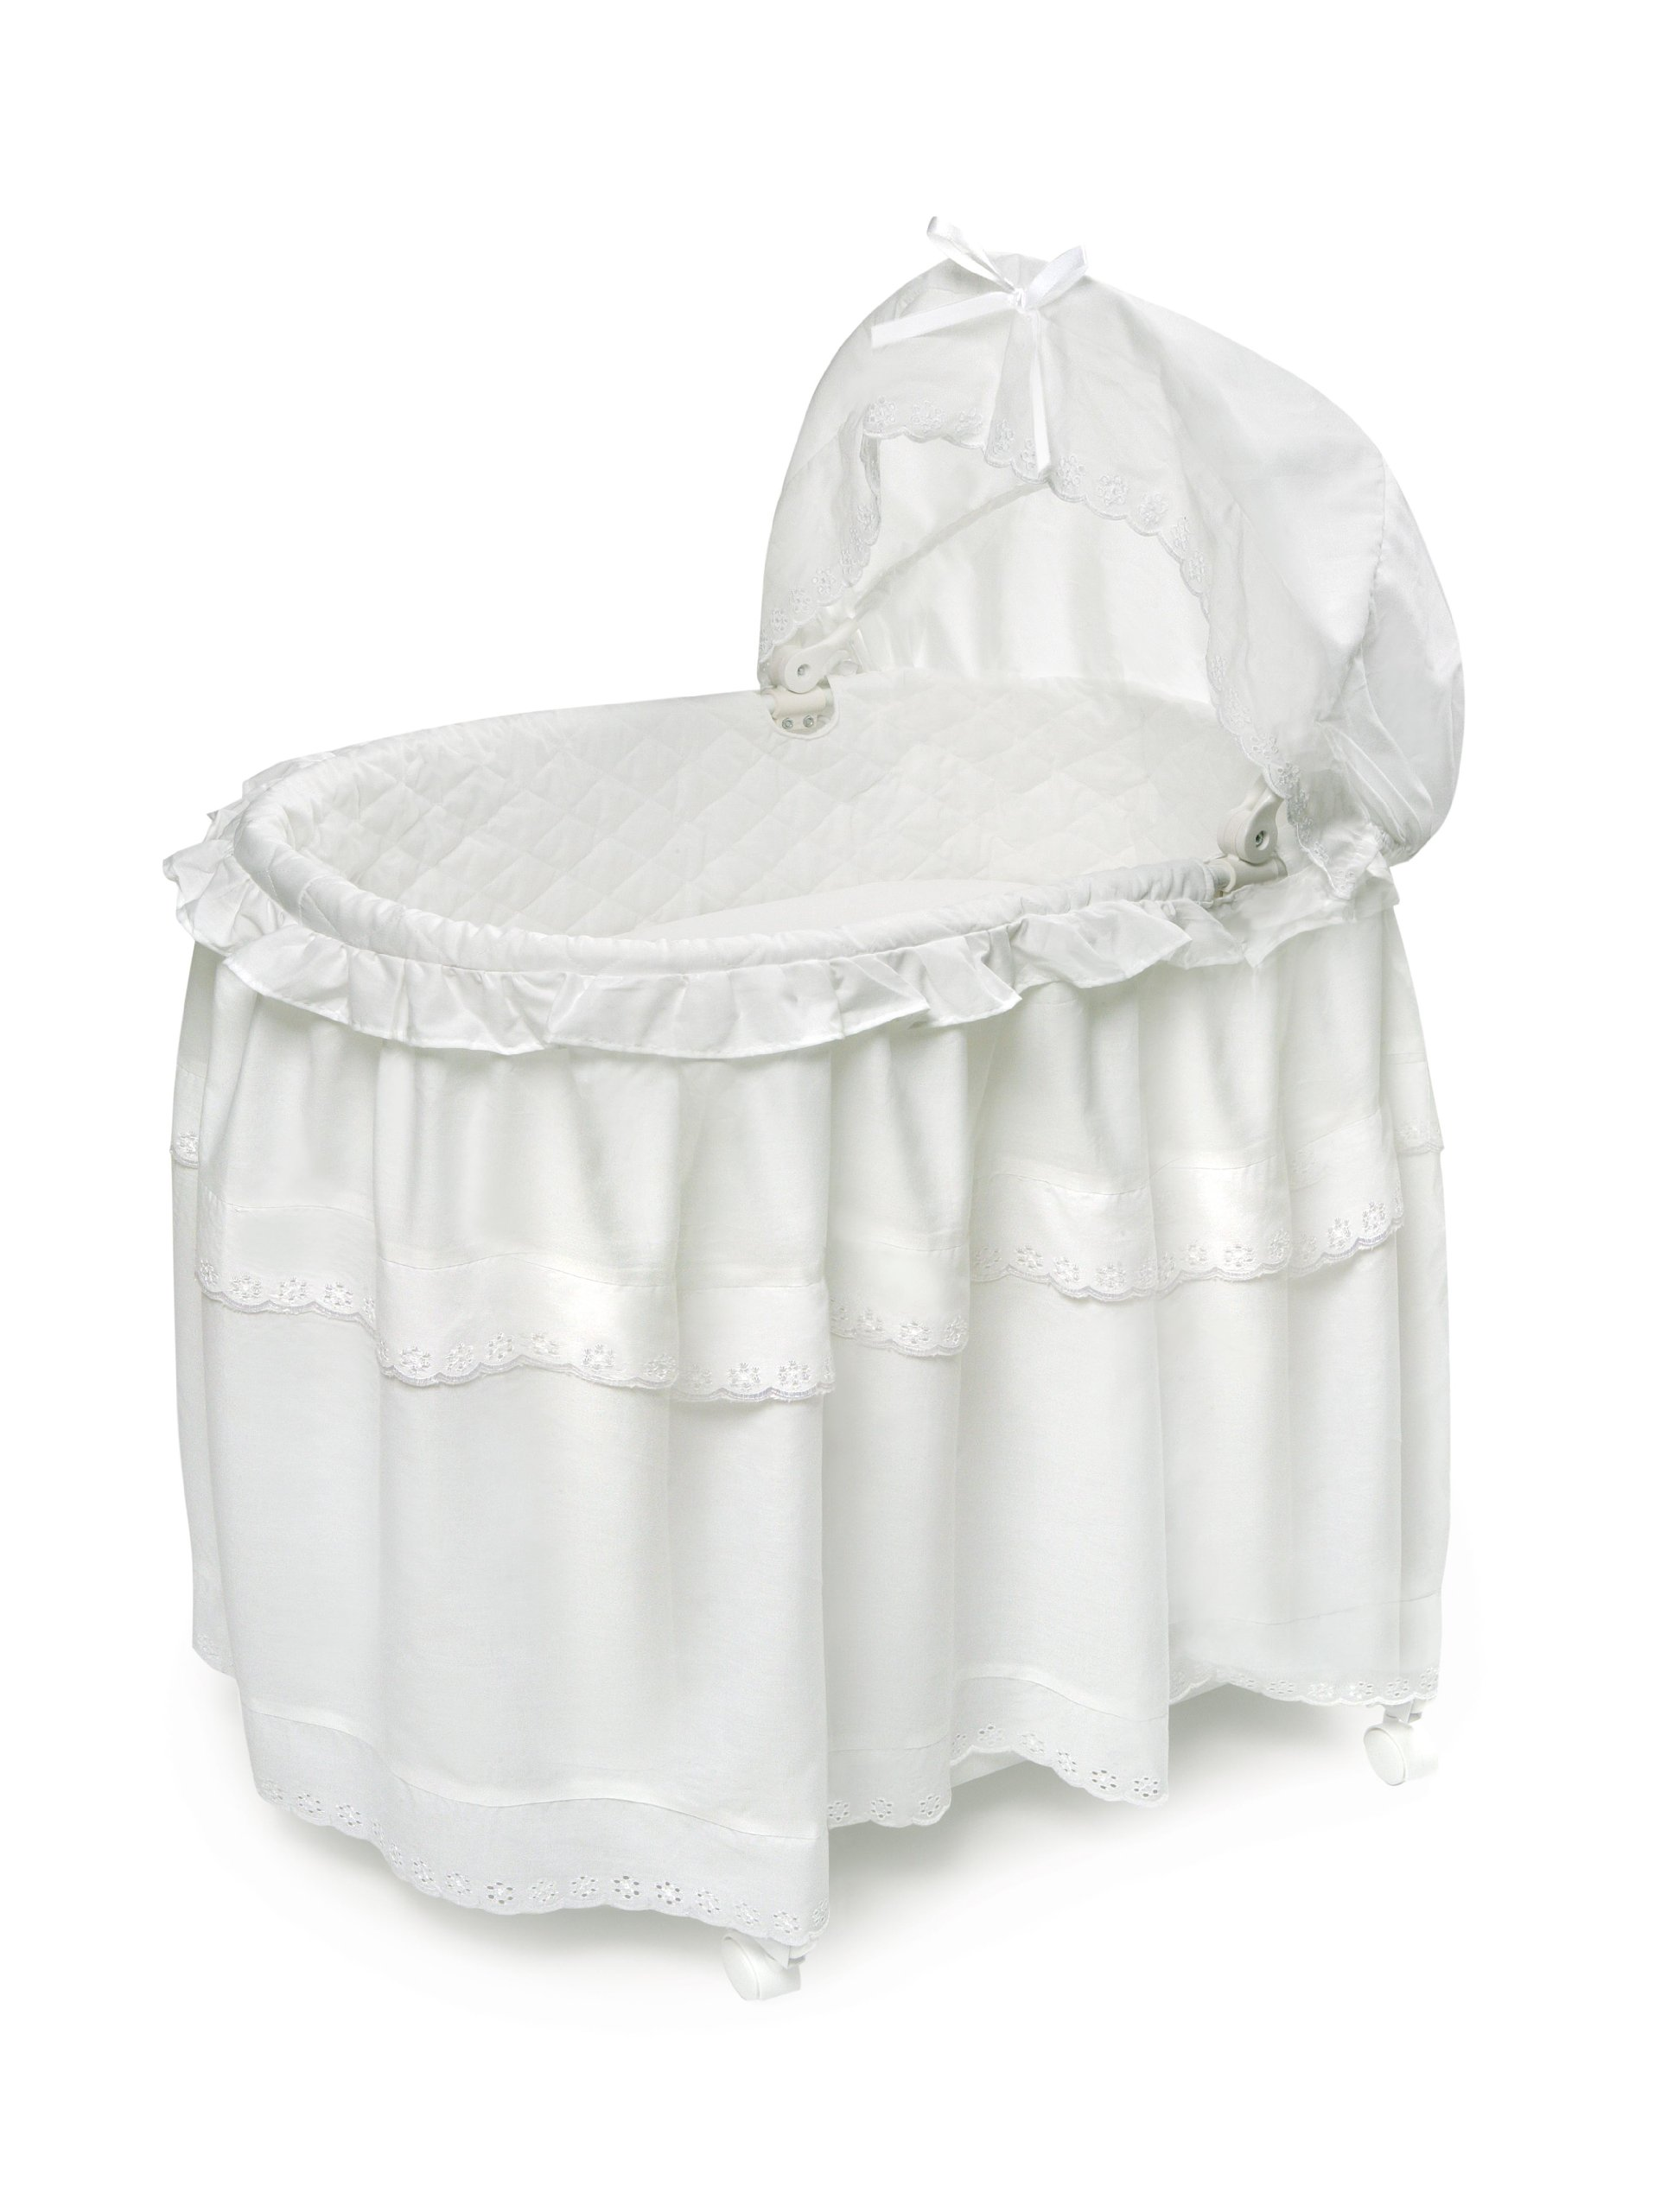 Badger Basket Long Skirt Portable Bassinet 'N Cradle with Toybox Base, White